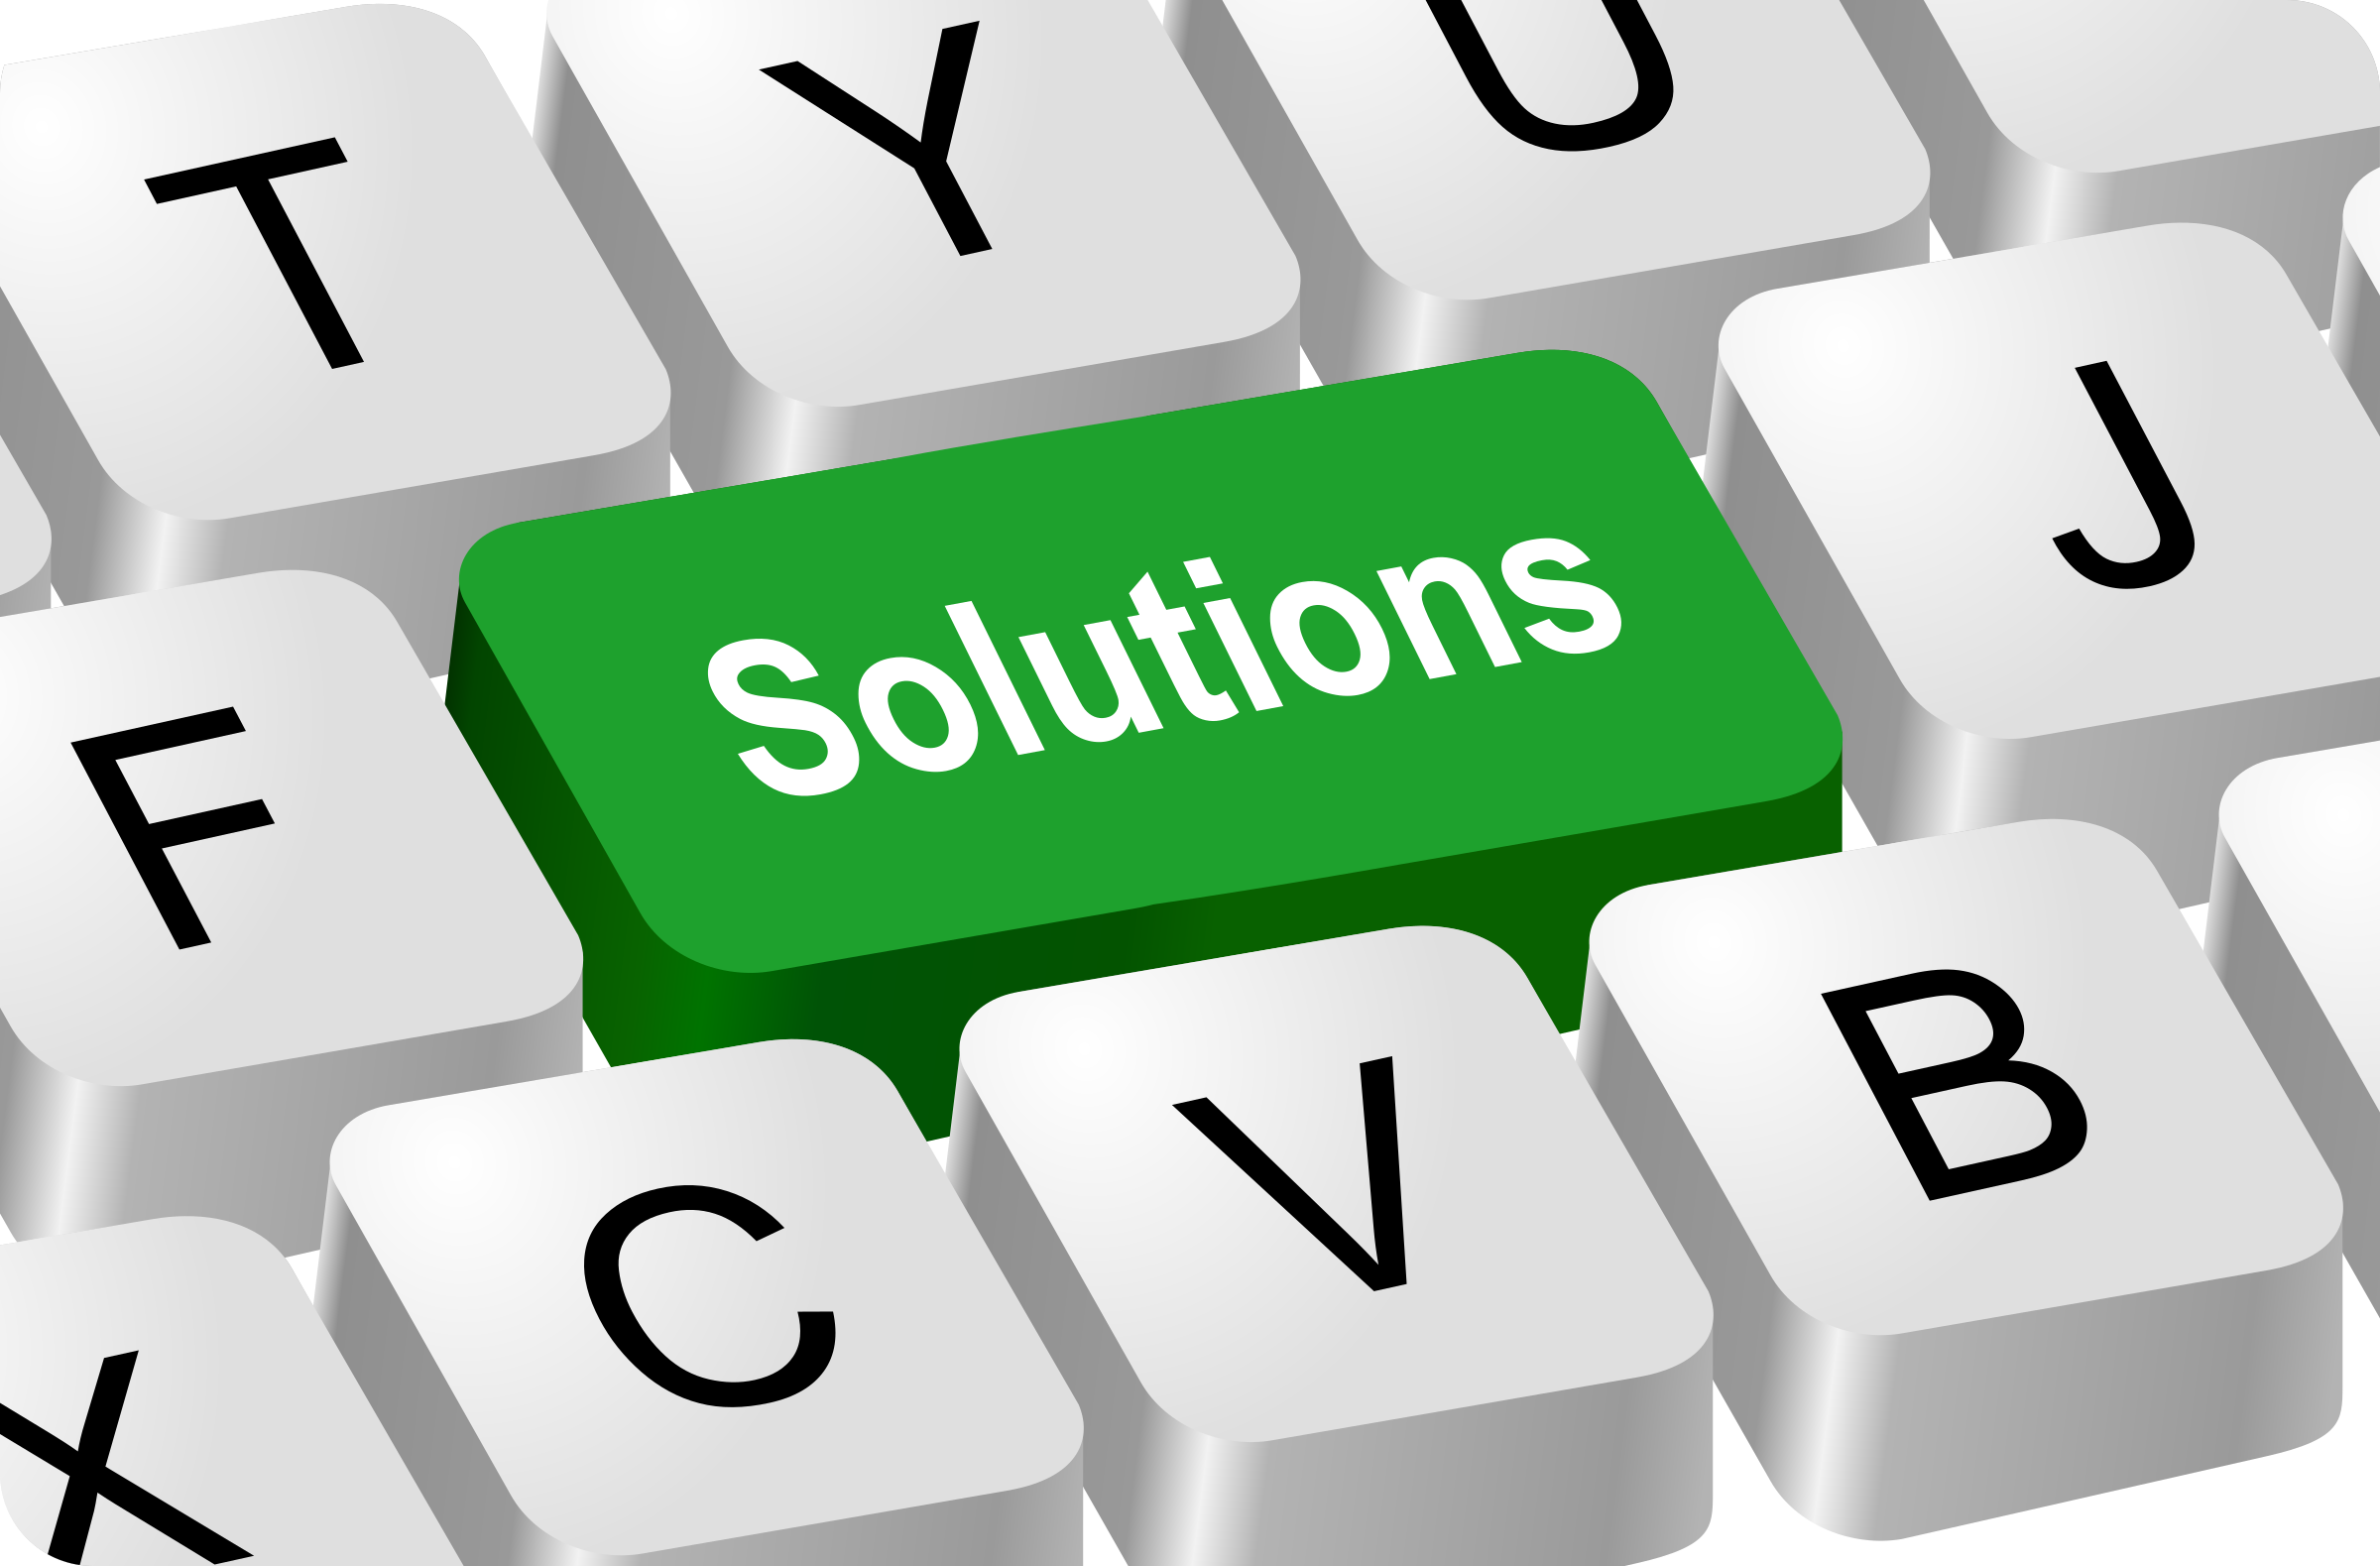 Find Solution Clip Art